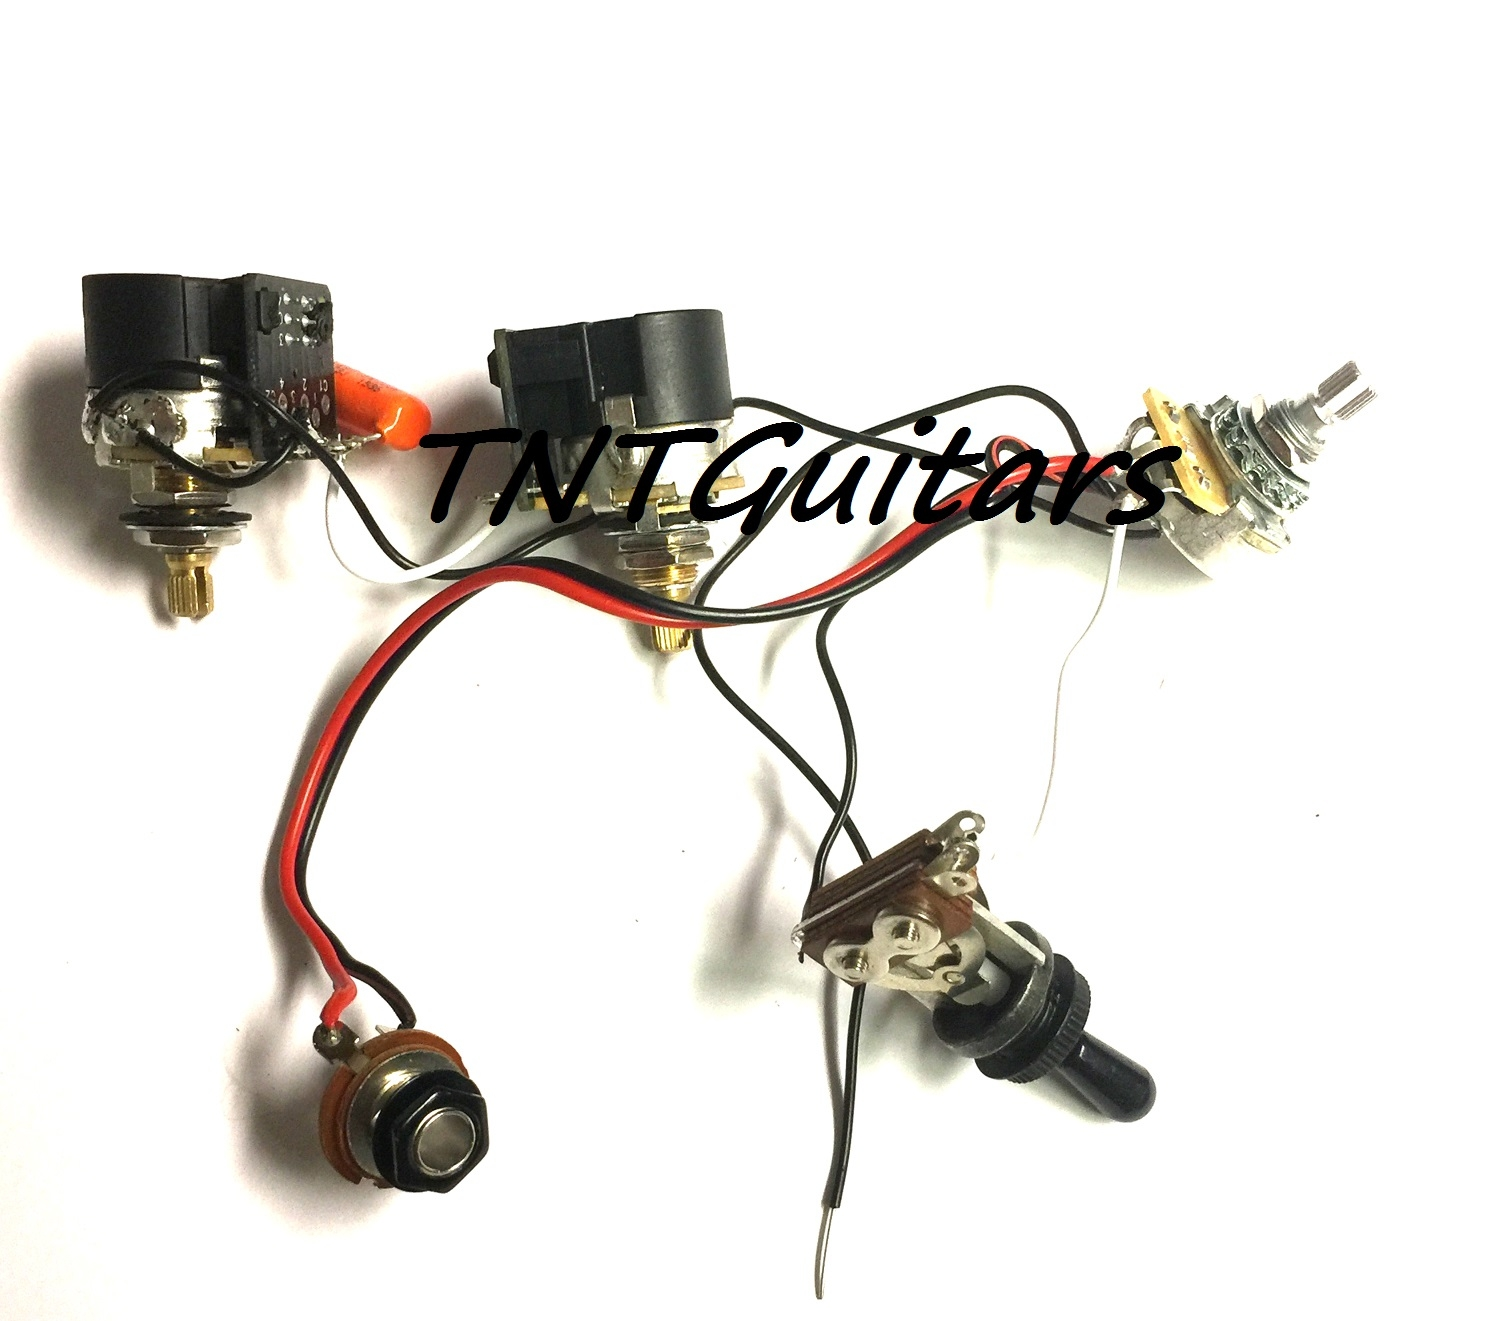 1v2t Prewired Harness 2 Pickup 3 Controls Cts Push Pull W Dual Used Gibsonstyle Humbucking Set Wiring Pots Switch And Coil Split